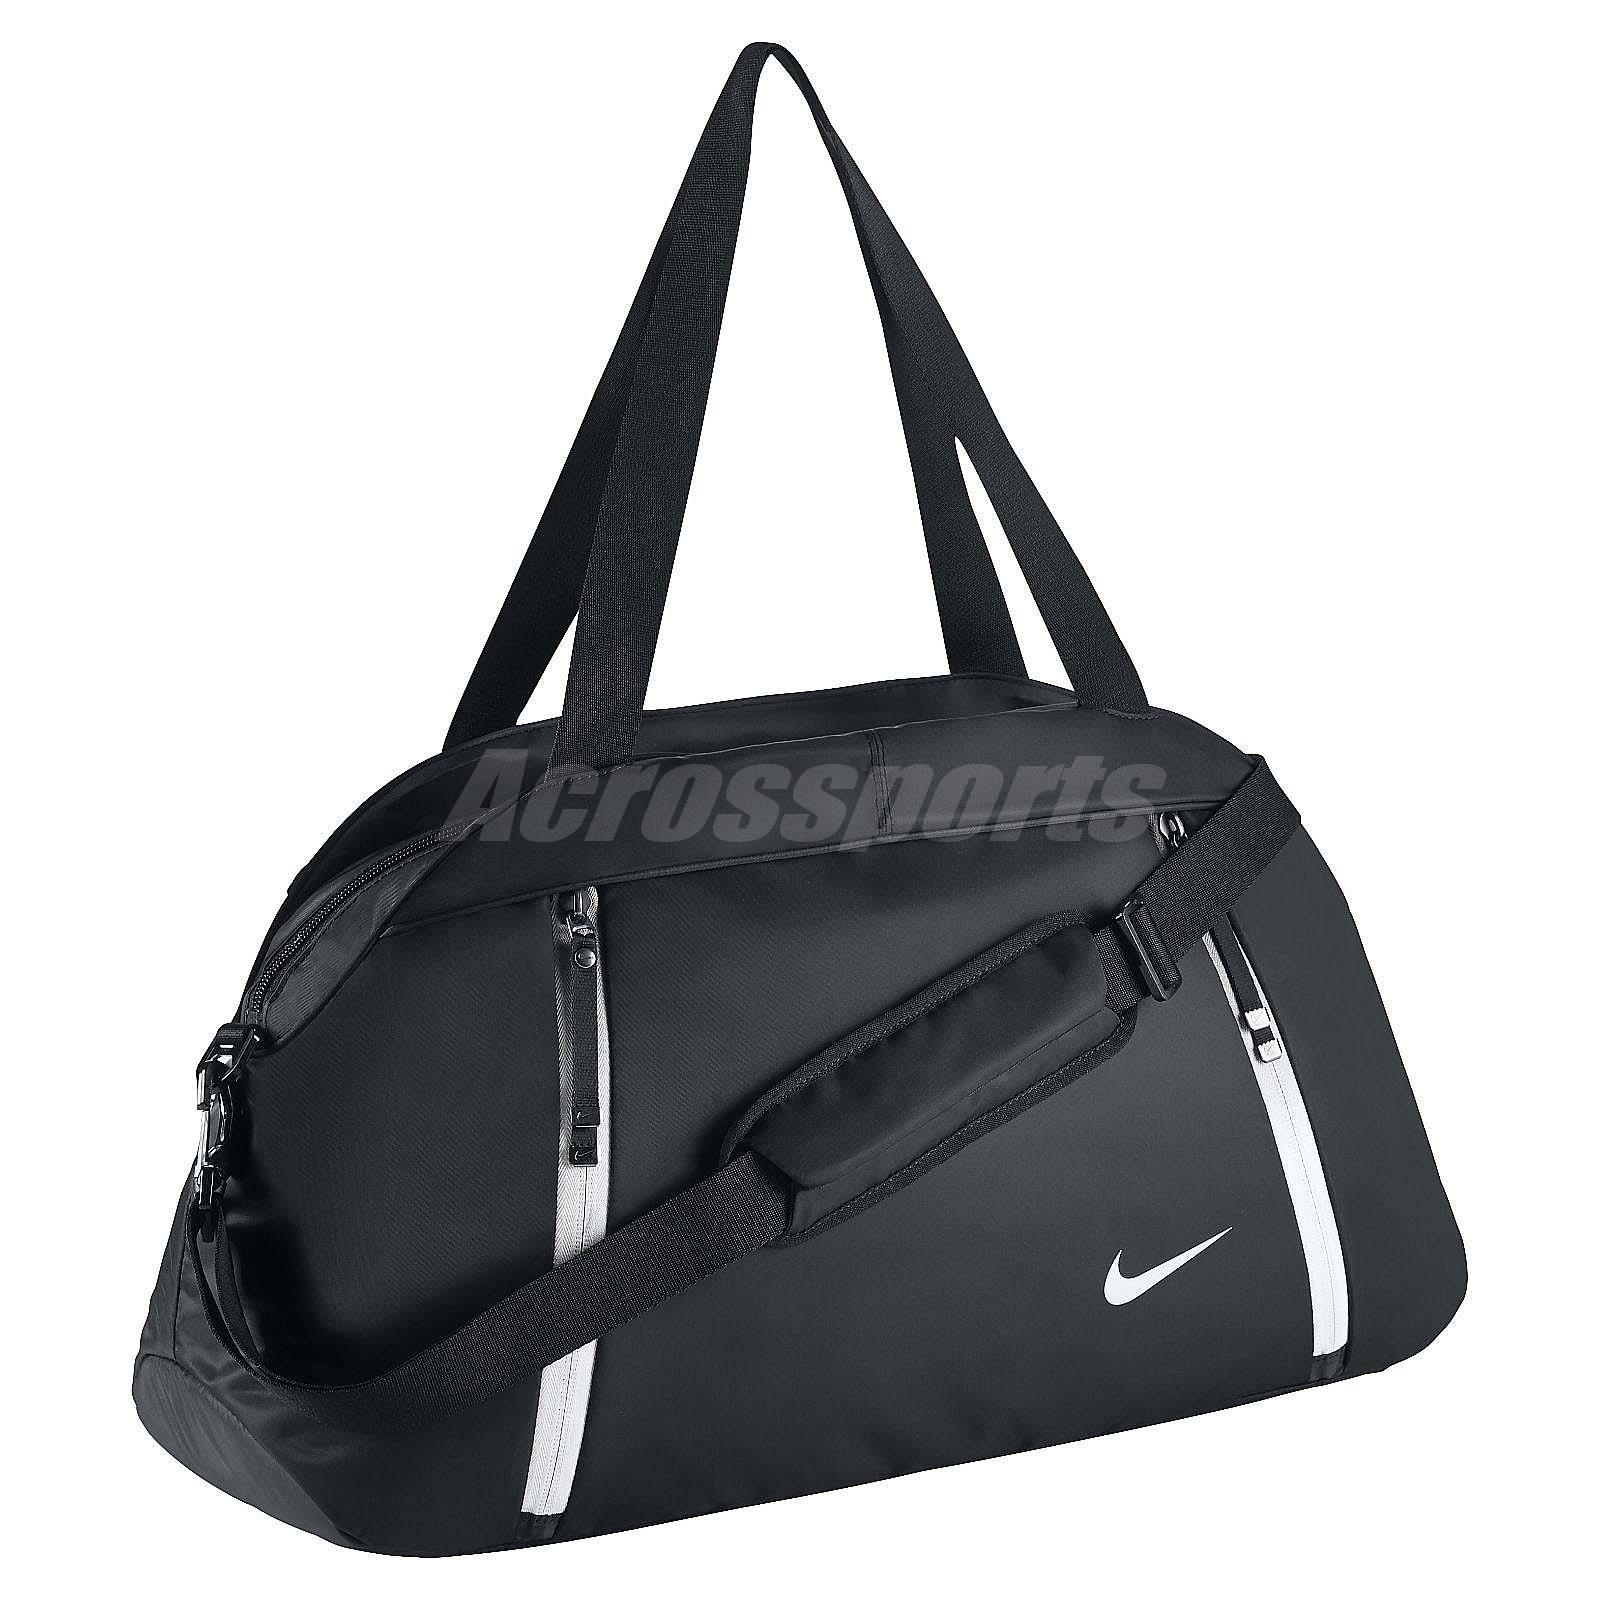 Buy nike gym bag black   OFF69% Discounted 4a5415c7b0757